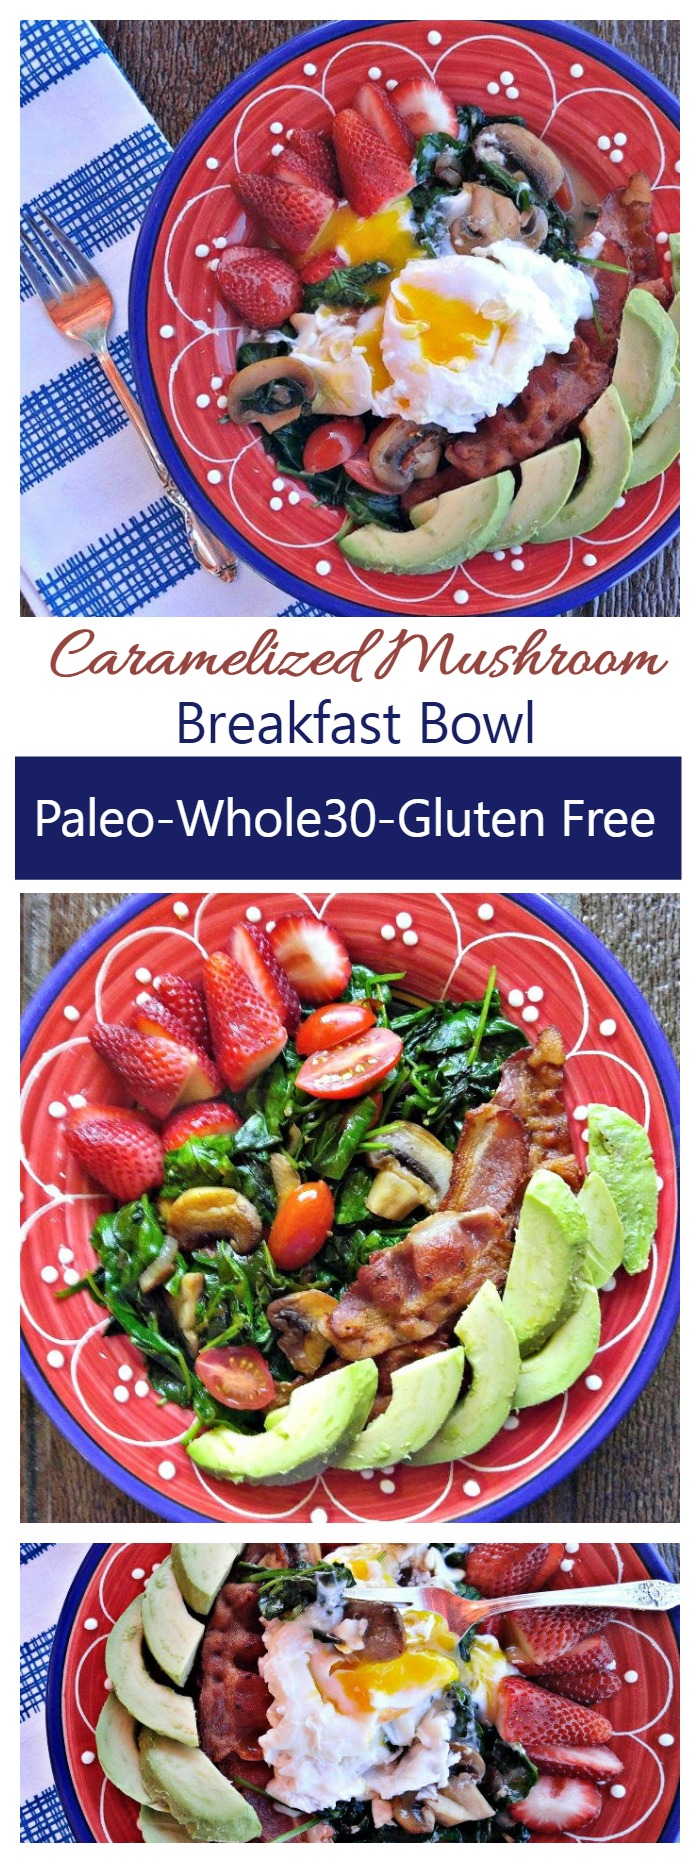 This caramelized mushroom breakfast bowl is a luscious combination of hearty goodness that is Paleo, Whole30, Dairy free and Gluten Free.